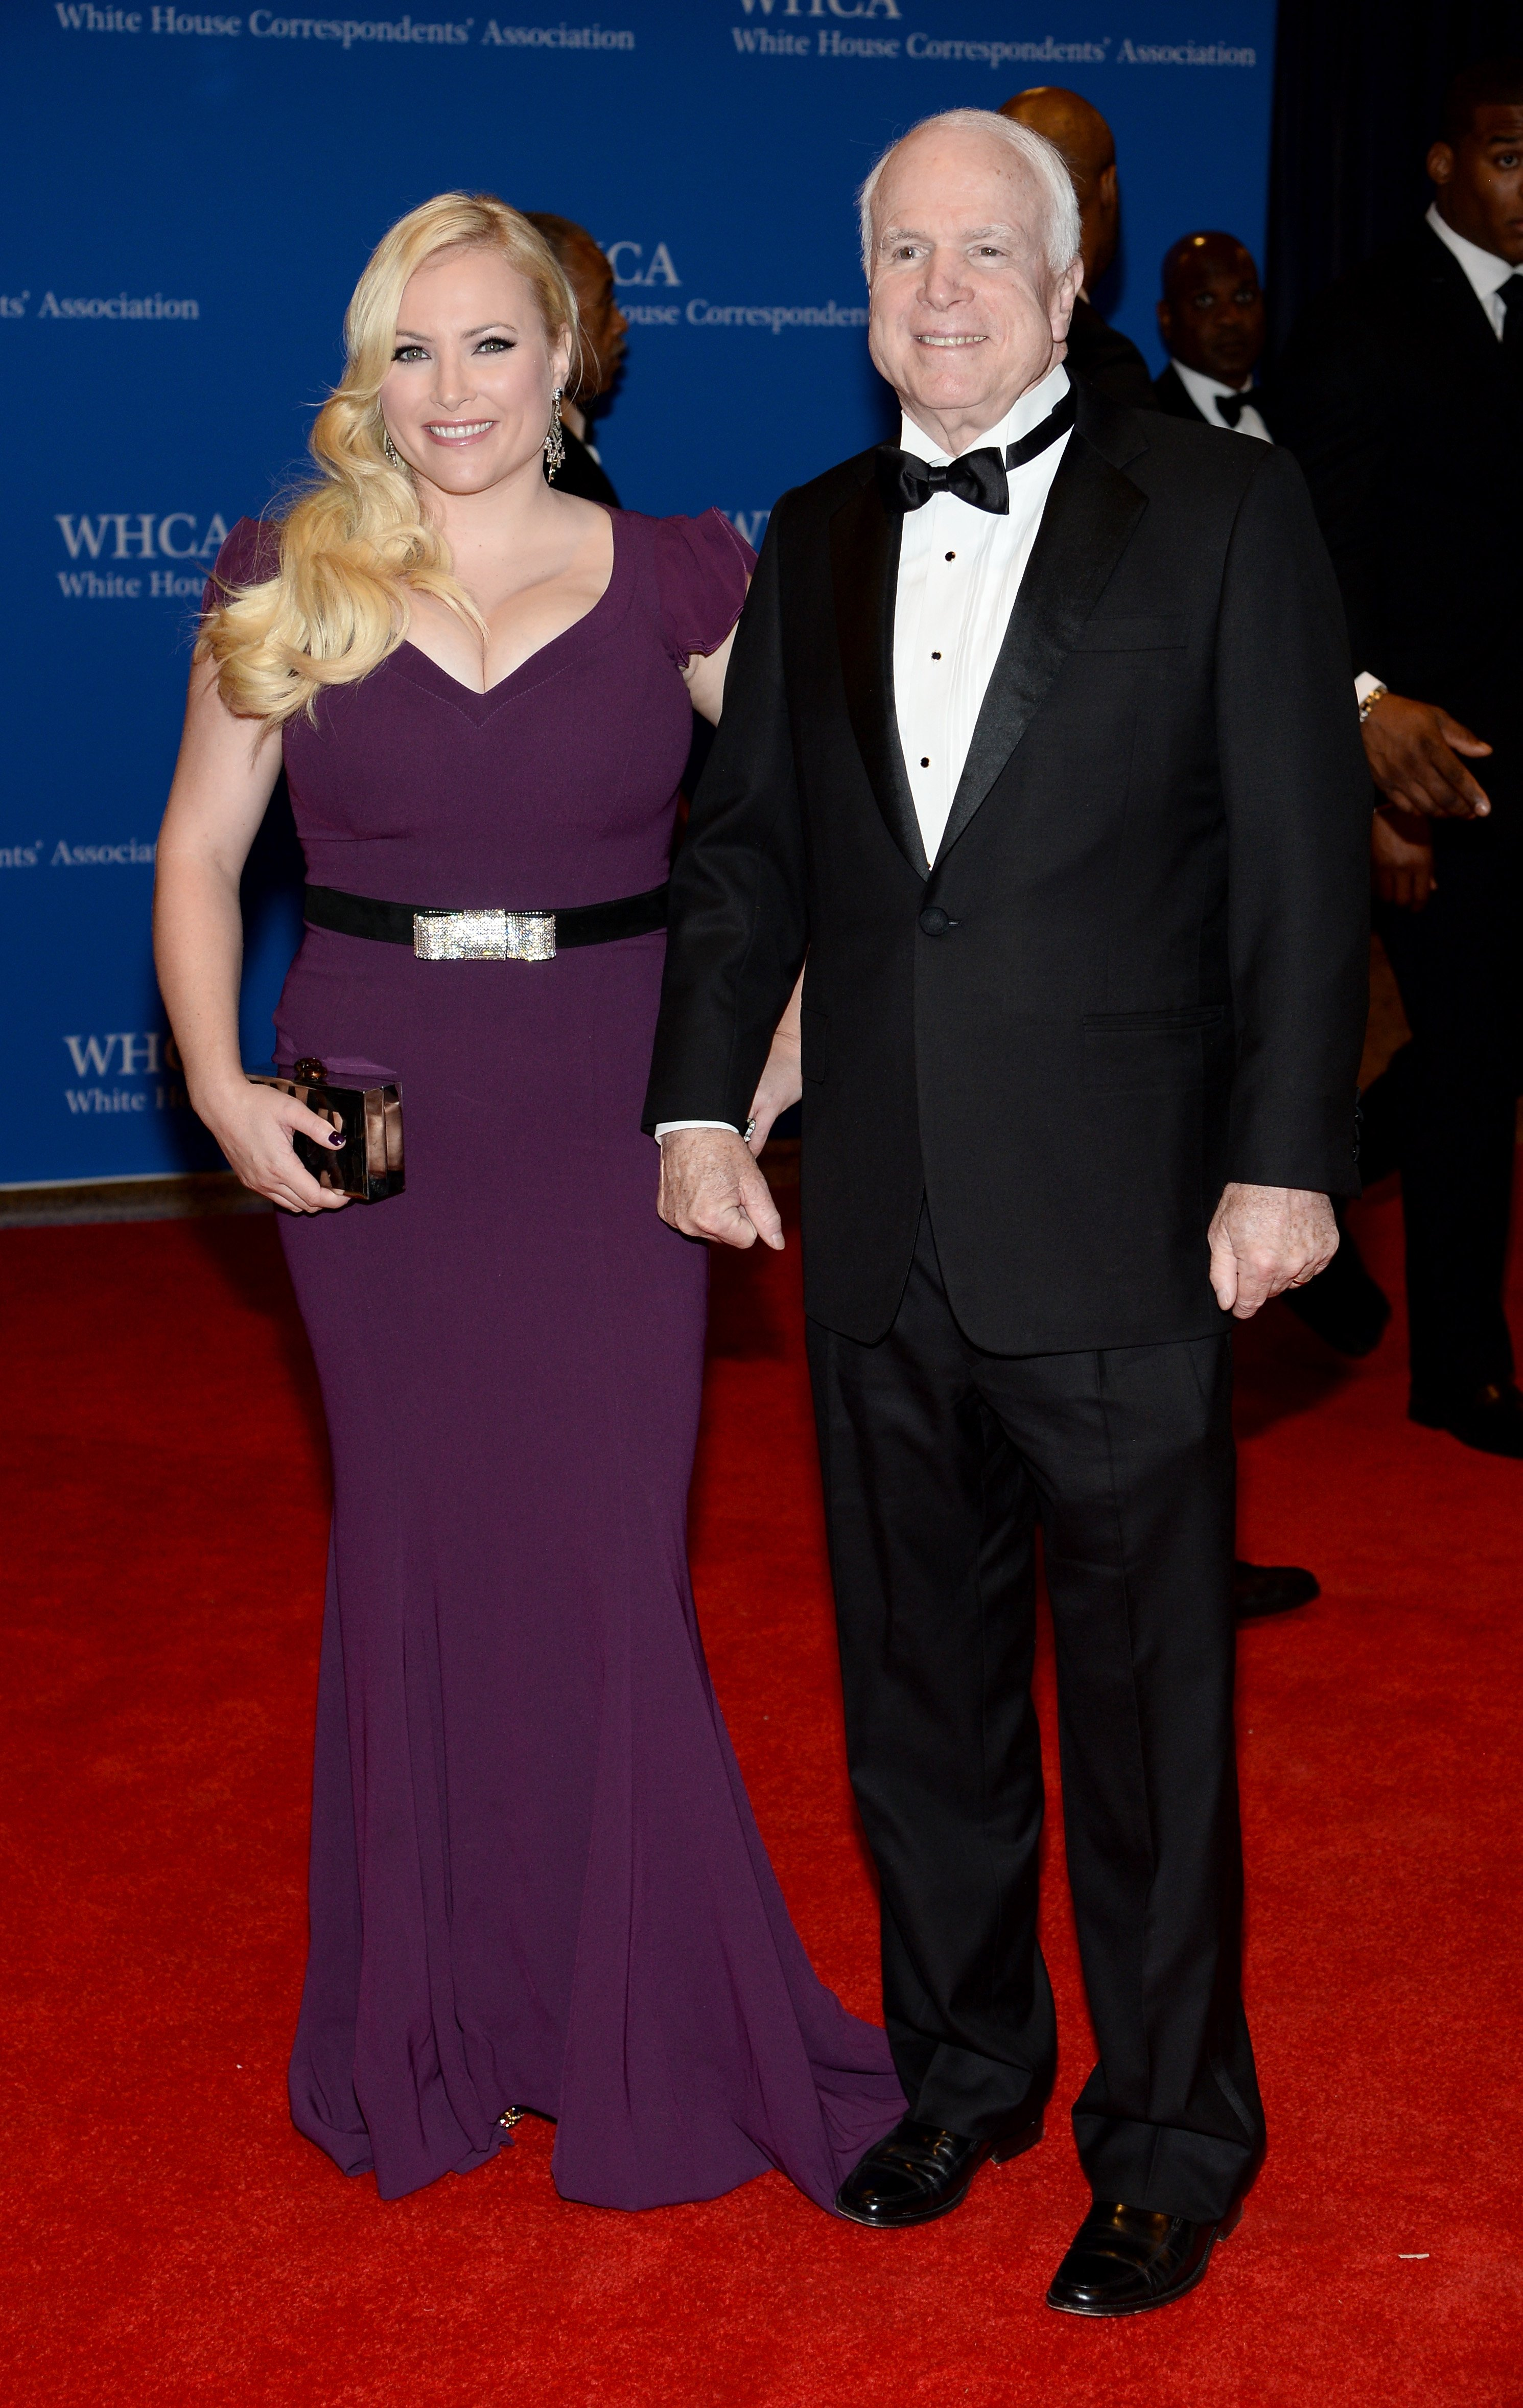 Megan McCain and Senator John McCain attend the 100th Annual White House Correspondents' Association Dinner on May 3, 2014, in Washington, DC.   Source: Getty Images.